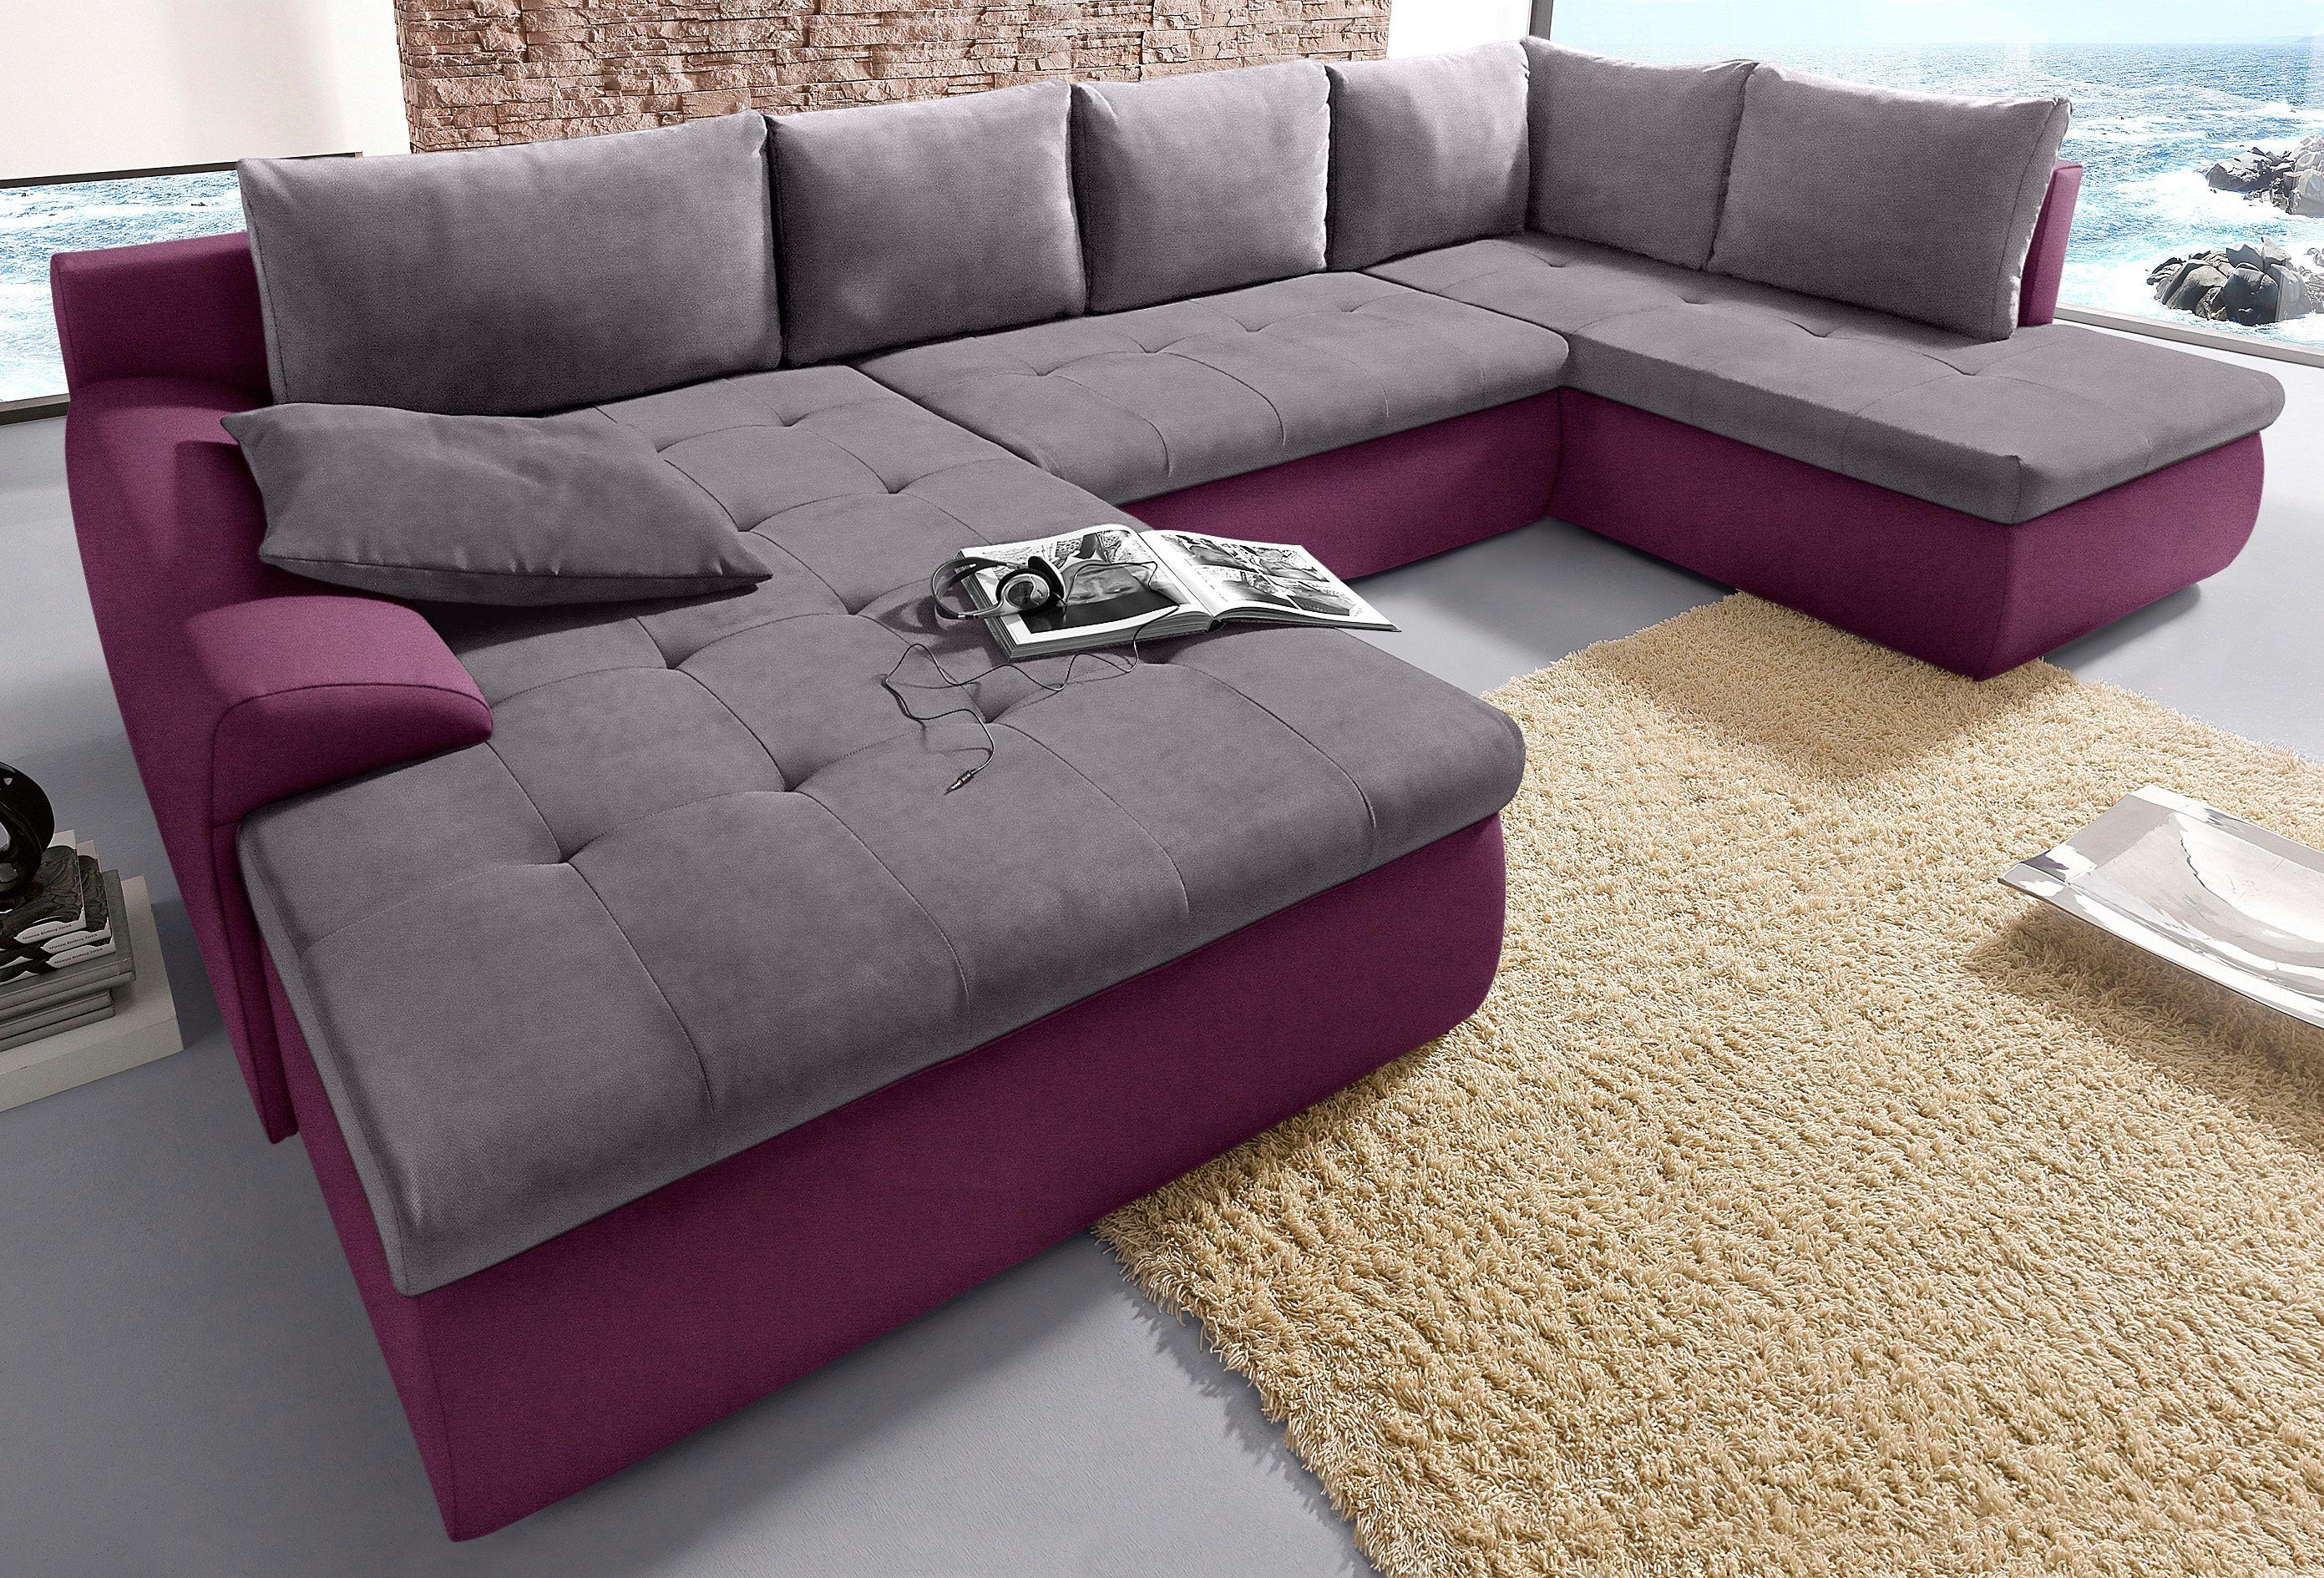 Sit&more Wohnlandschaft Mit Bettfunktion Pin By Luiz Antonio On Sofás Furniture Cozy Couch Sofa